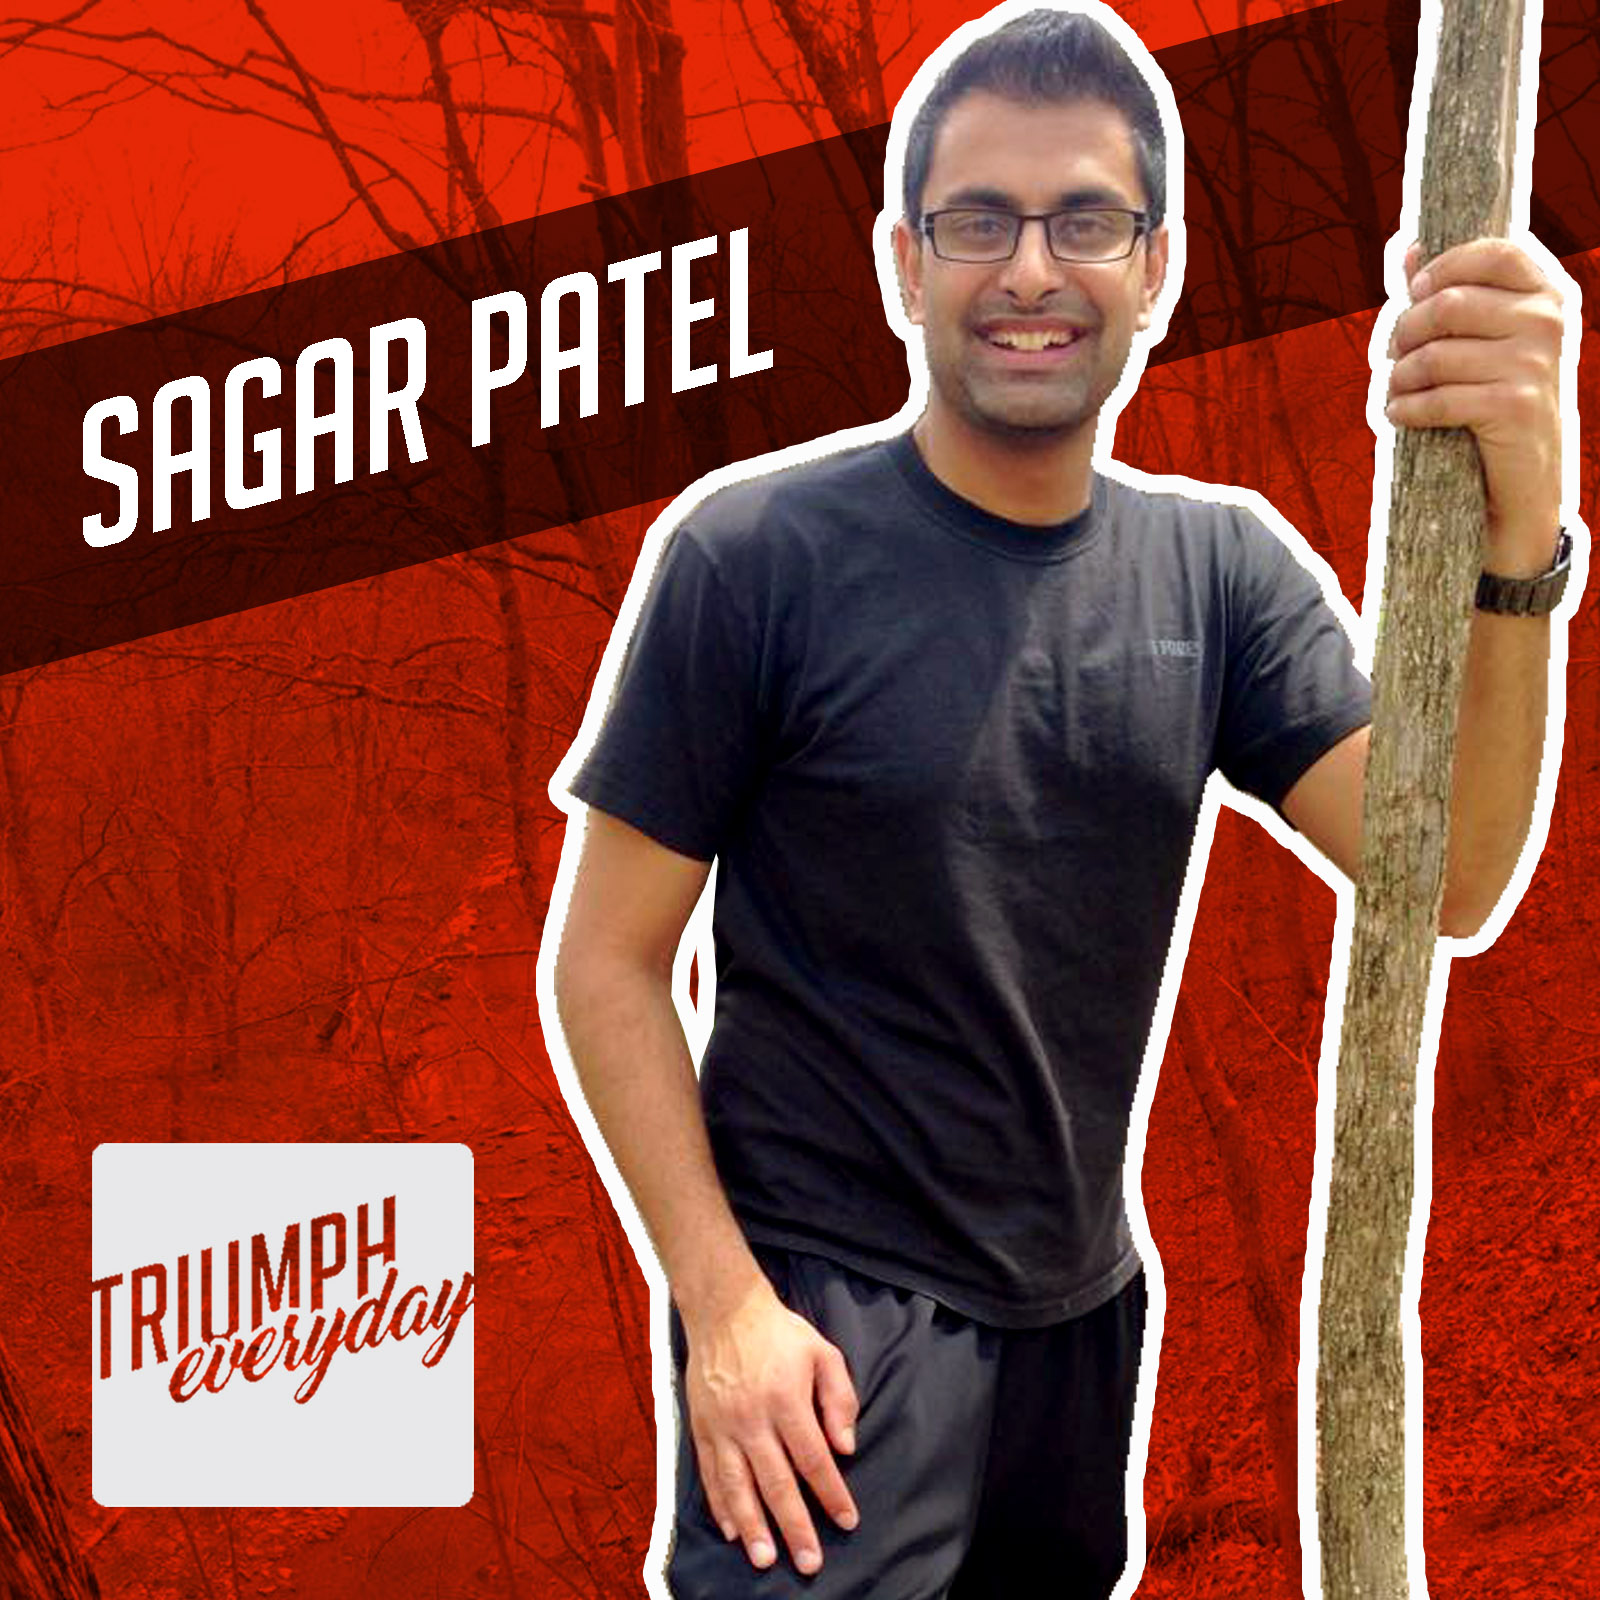 Triumph Everyday Sagar Soundcloud